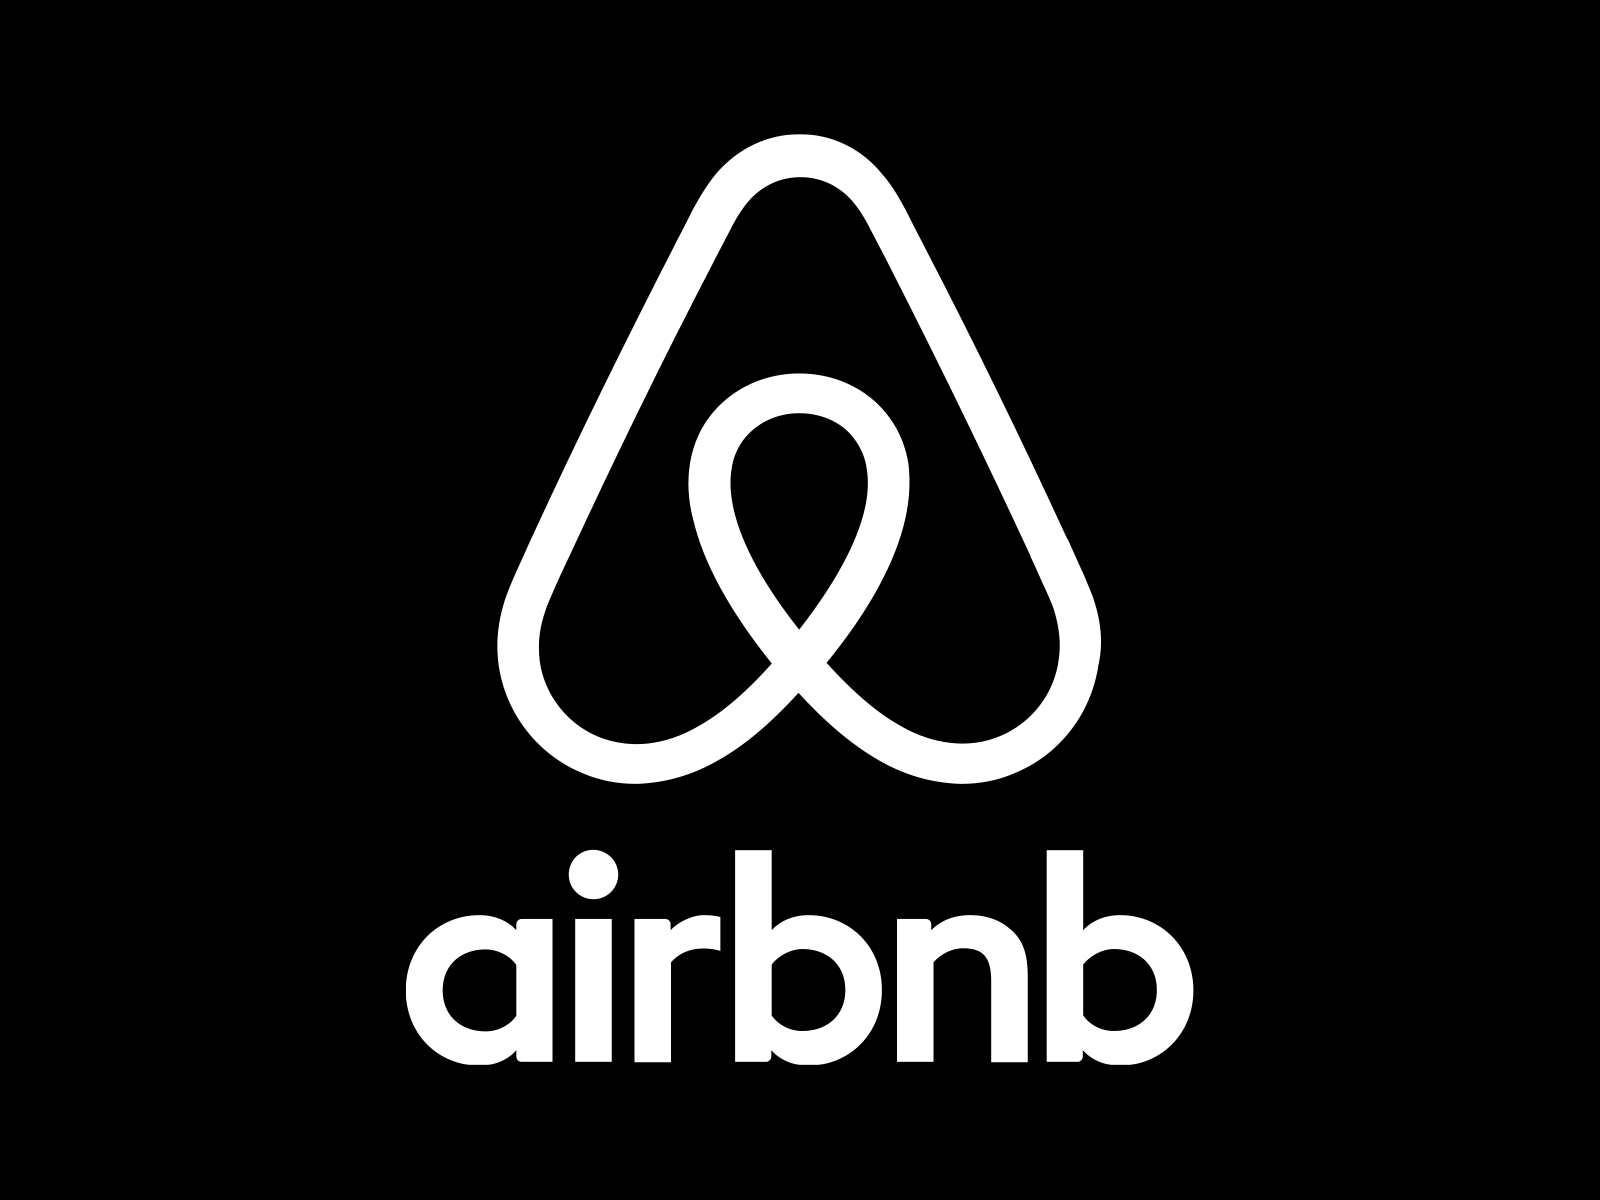 airbnb-logo-white.png